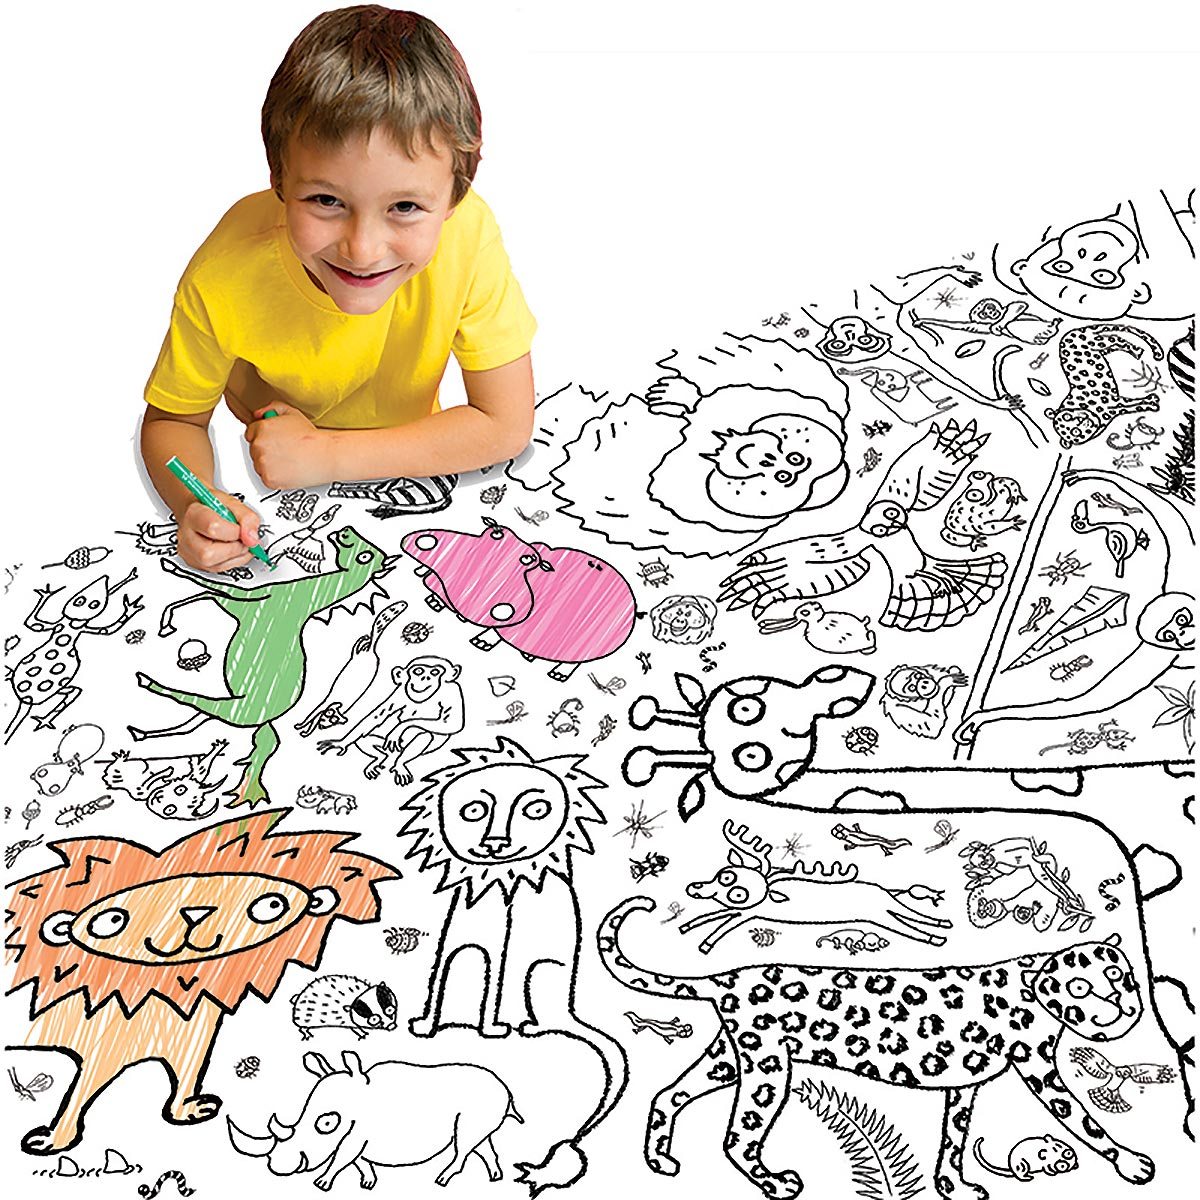 cheeky boy colouring in tablecloth